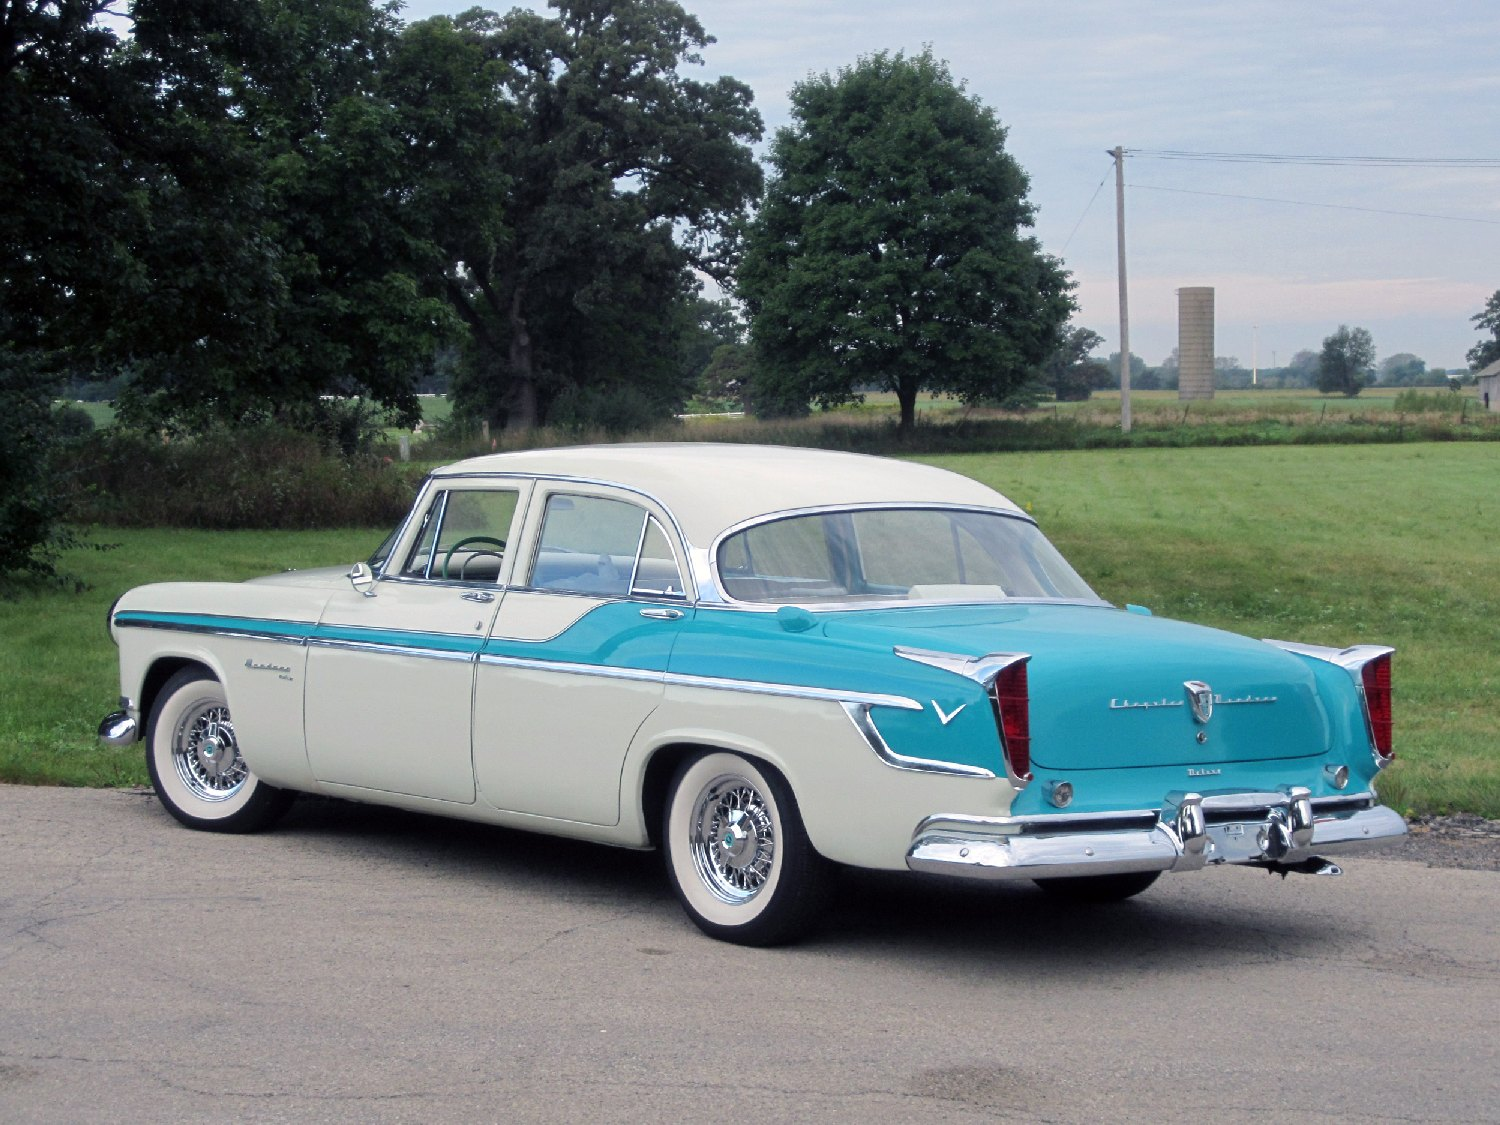 All American Classic Cars: 1955 Chrysler Windsor DeLuxe 4 ...